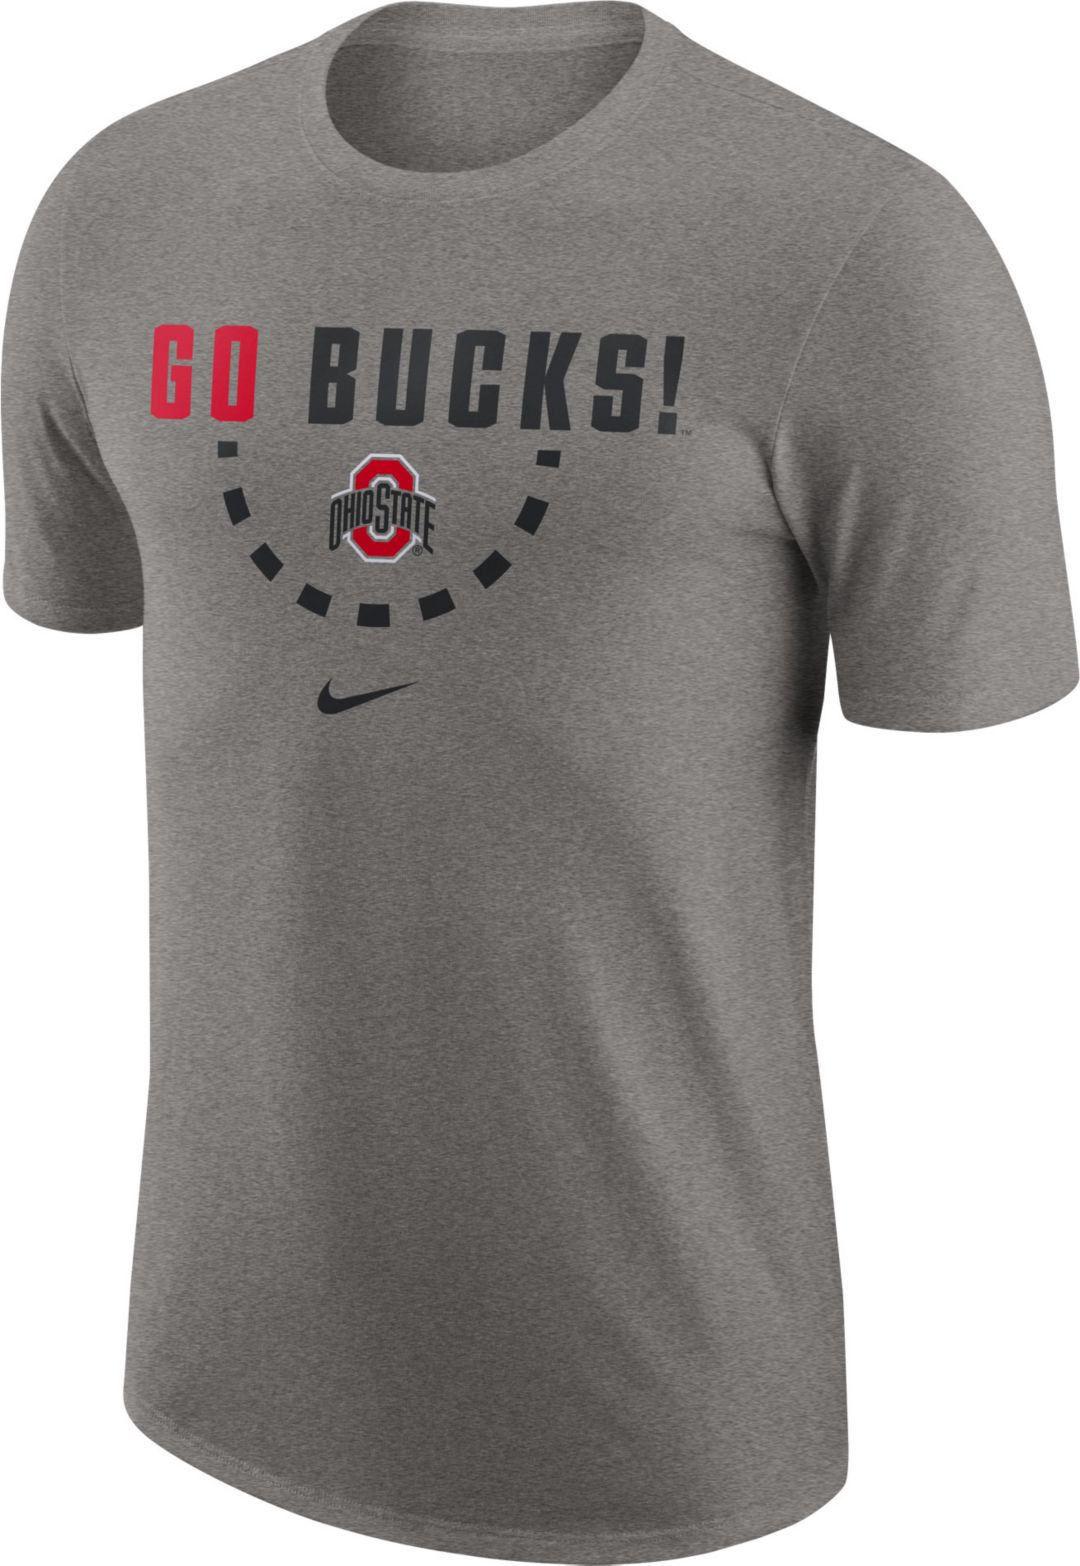 0641aaad Nike Men's Ohio State Buckeyes Gray Mantra Basketball T-Shirt.  noImageFound. Previous